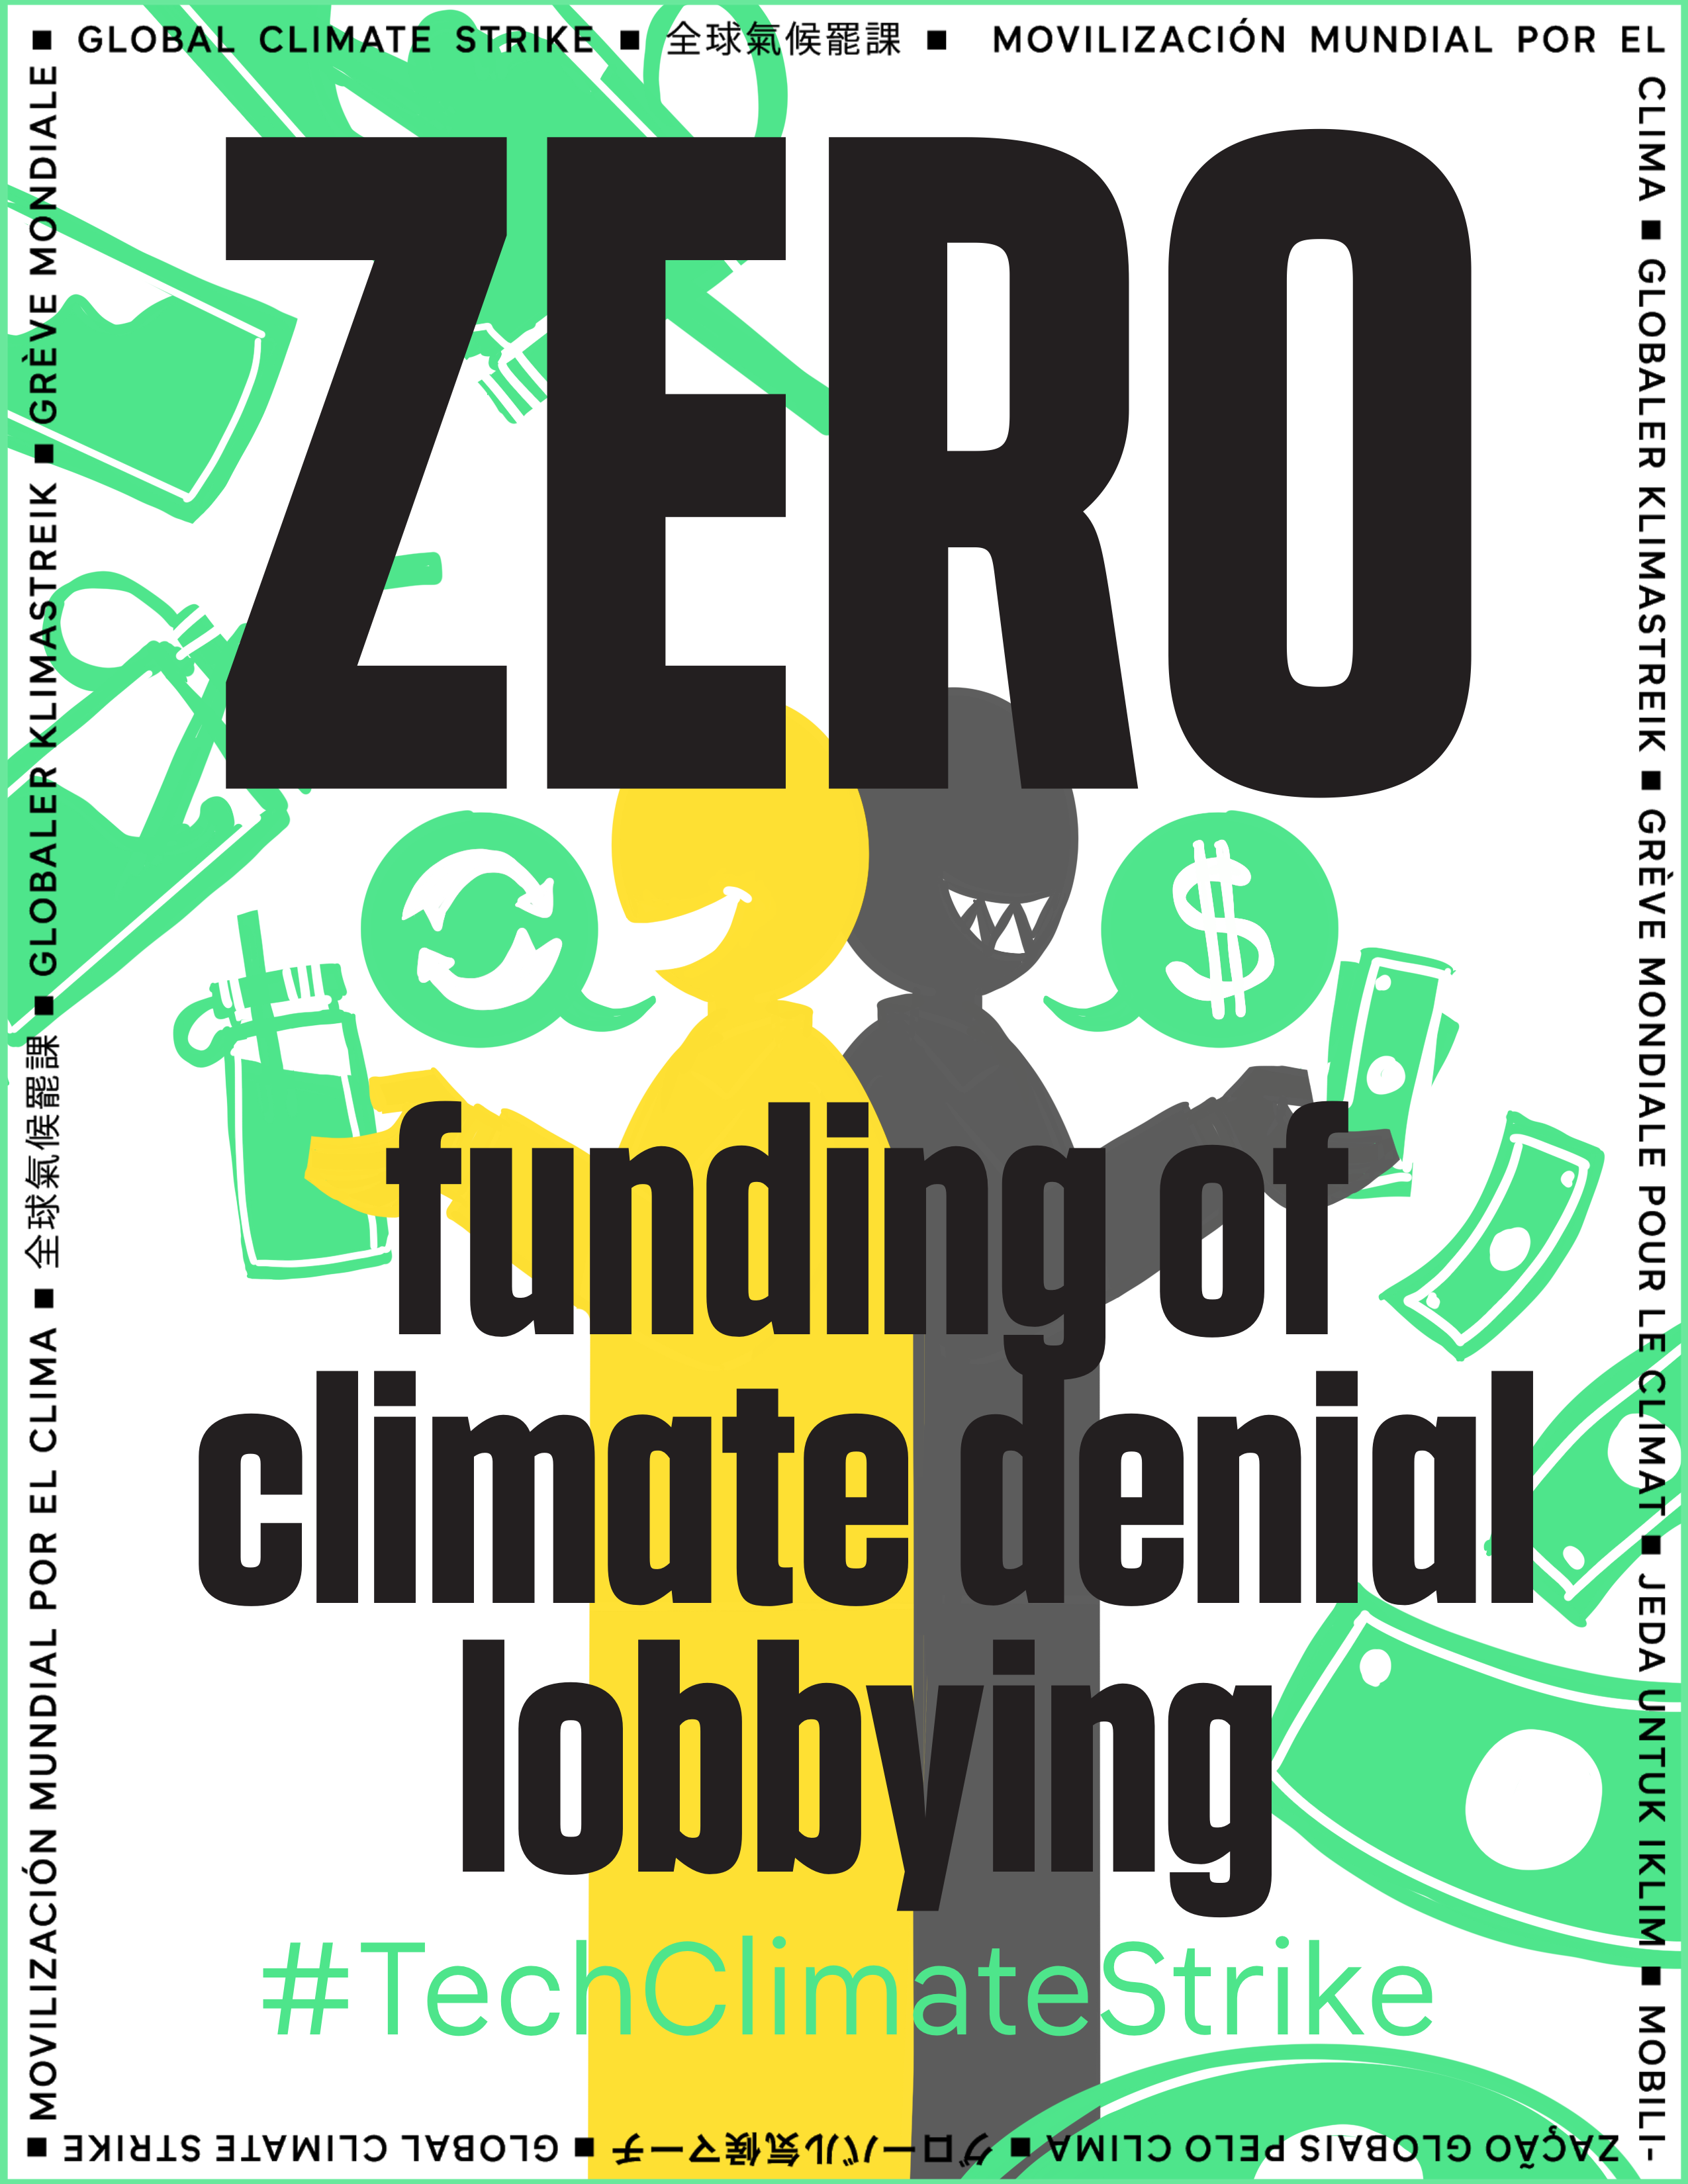 Zero funding of climate denial lobbying or other efforts